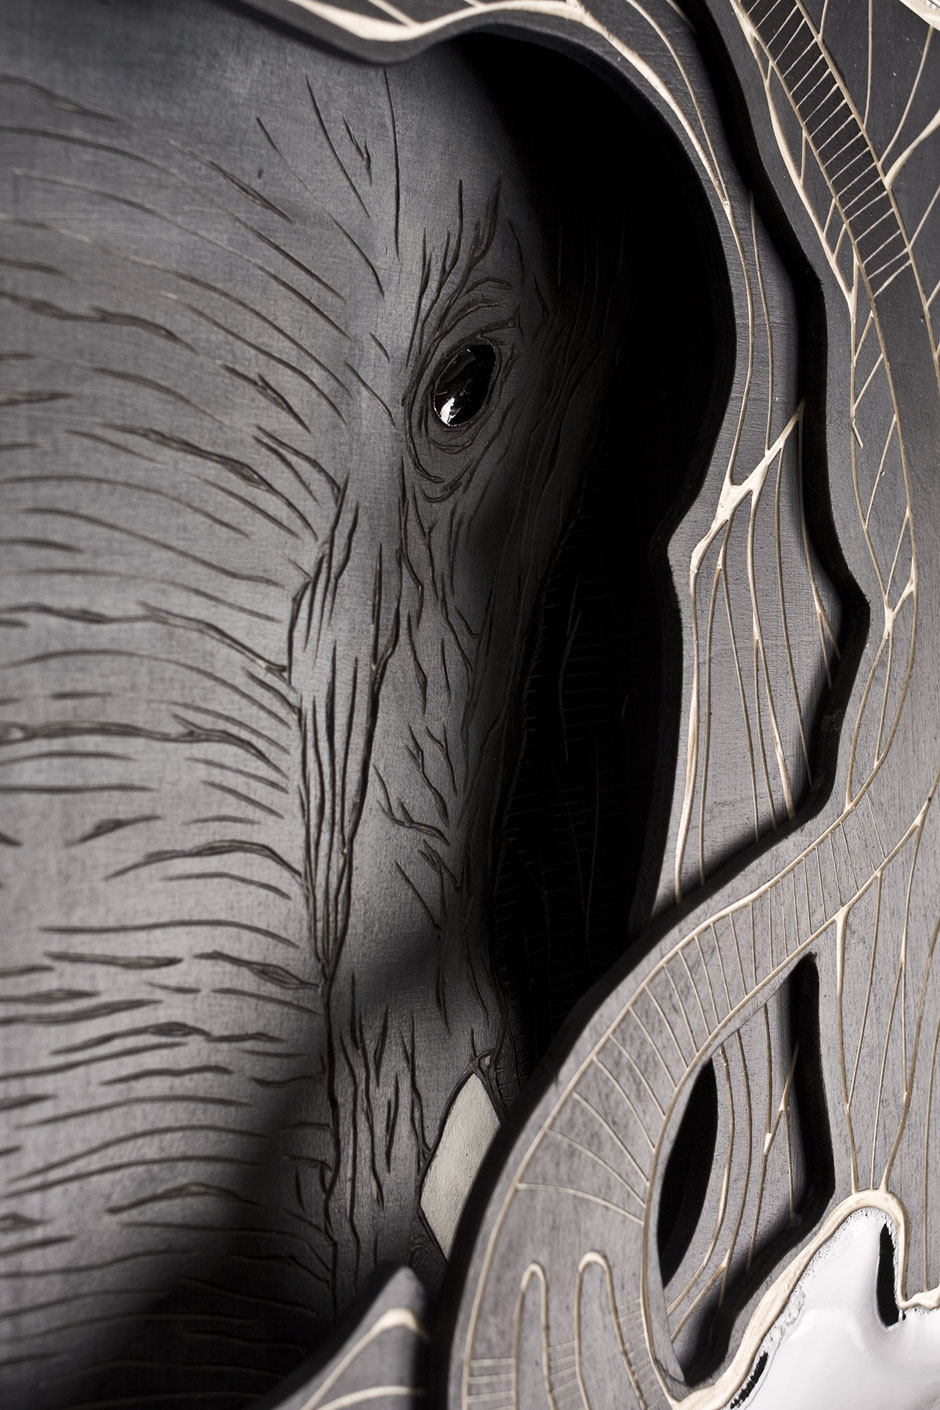 Detail from: Animal Inside (Masked Hero #02: Elephant) | © Alex Diamond